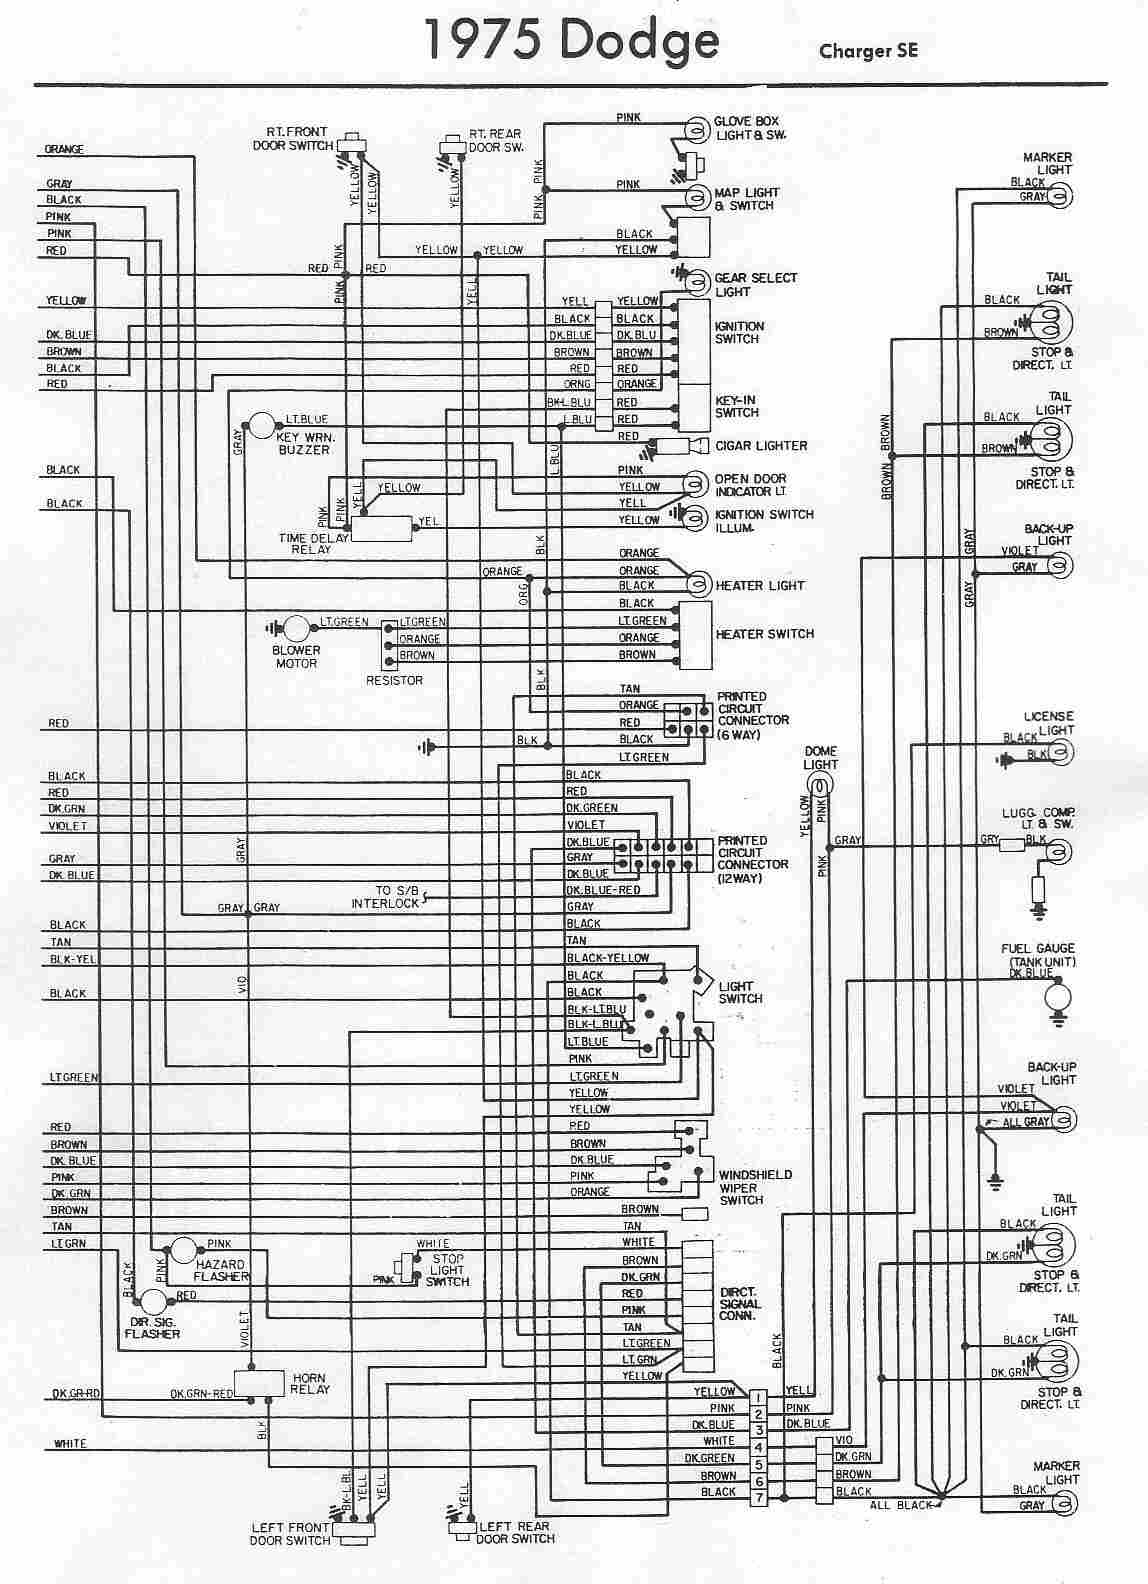 93 Dodge Ac Wiring Diagram - Wiring Diagrams Show on